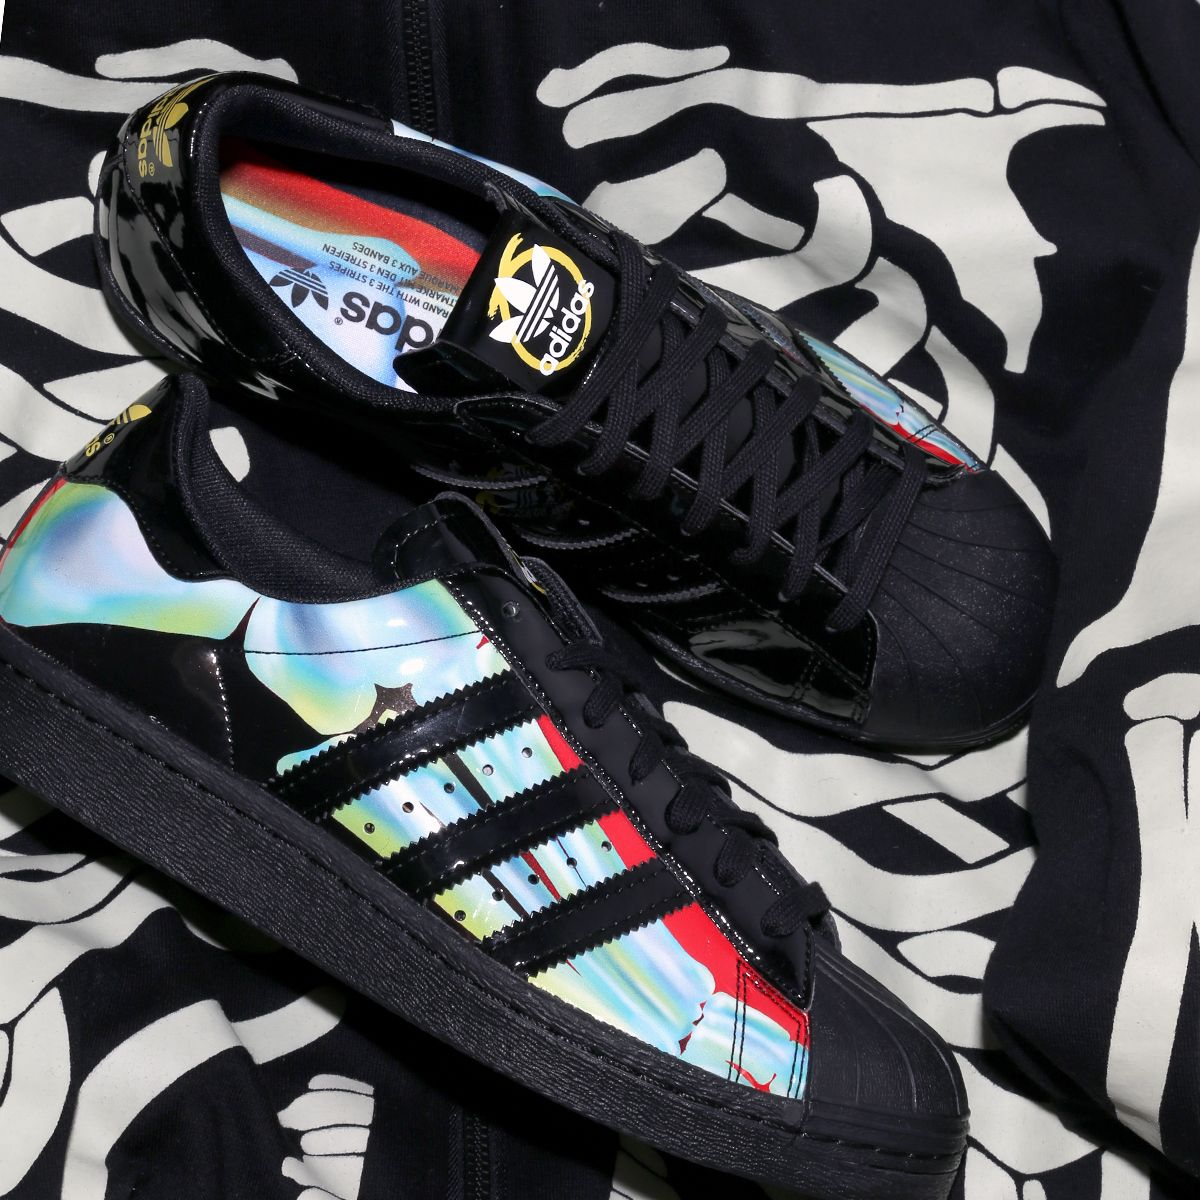 More Adidas X Rita Ora Perfection With These Skeleton Superstars Http Www Shoeconnection Co Nz Products Aduzns5f1ax Sneaker Head Sneakers Fashion Adidas